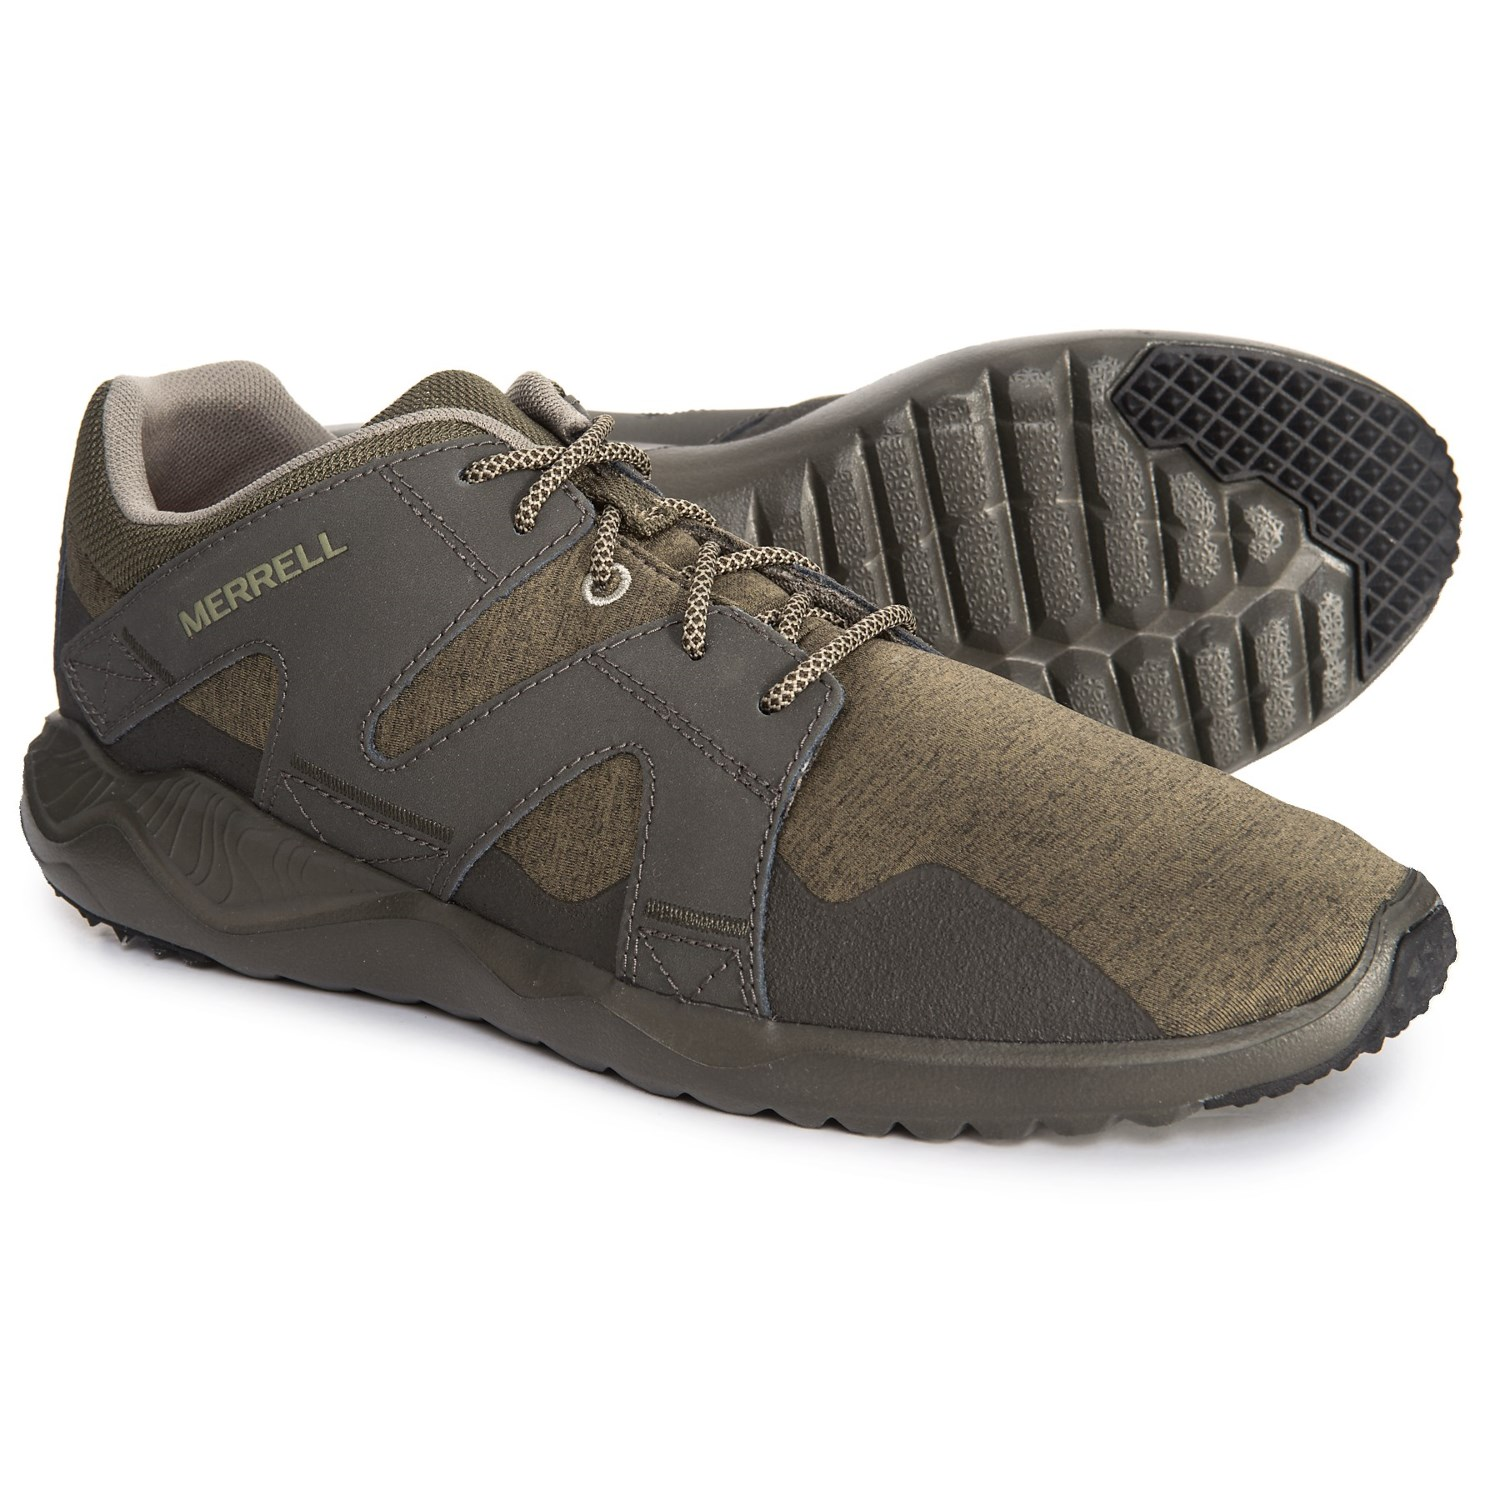 4fccea74ee8 Merrell 1SIX8 Lace Sneakers (For Men)